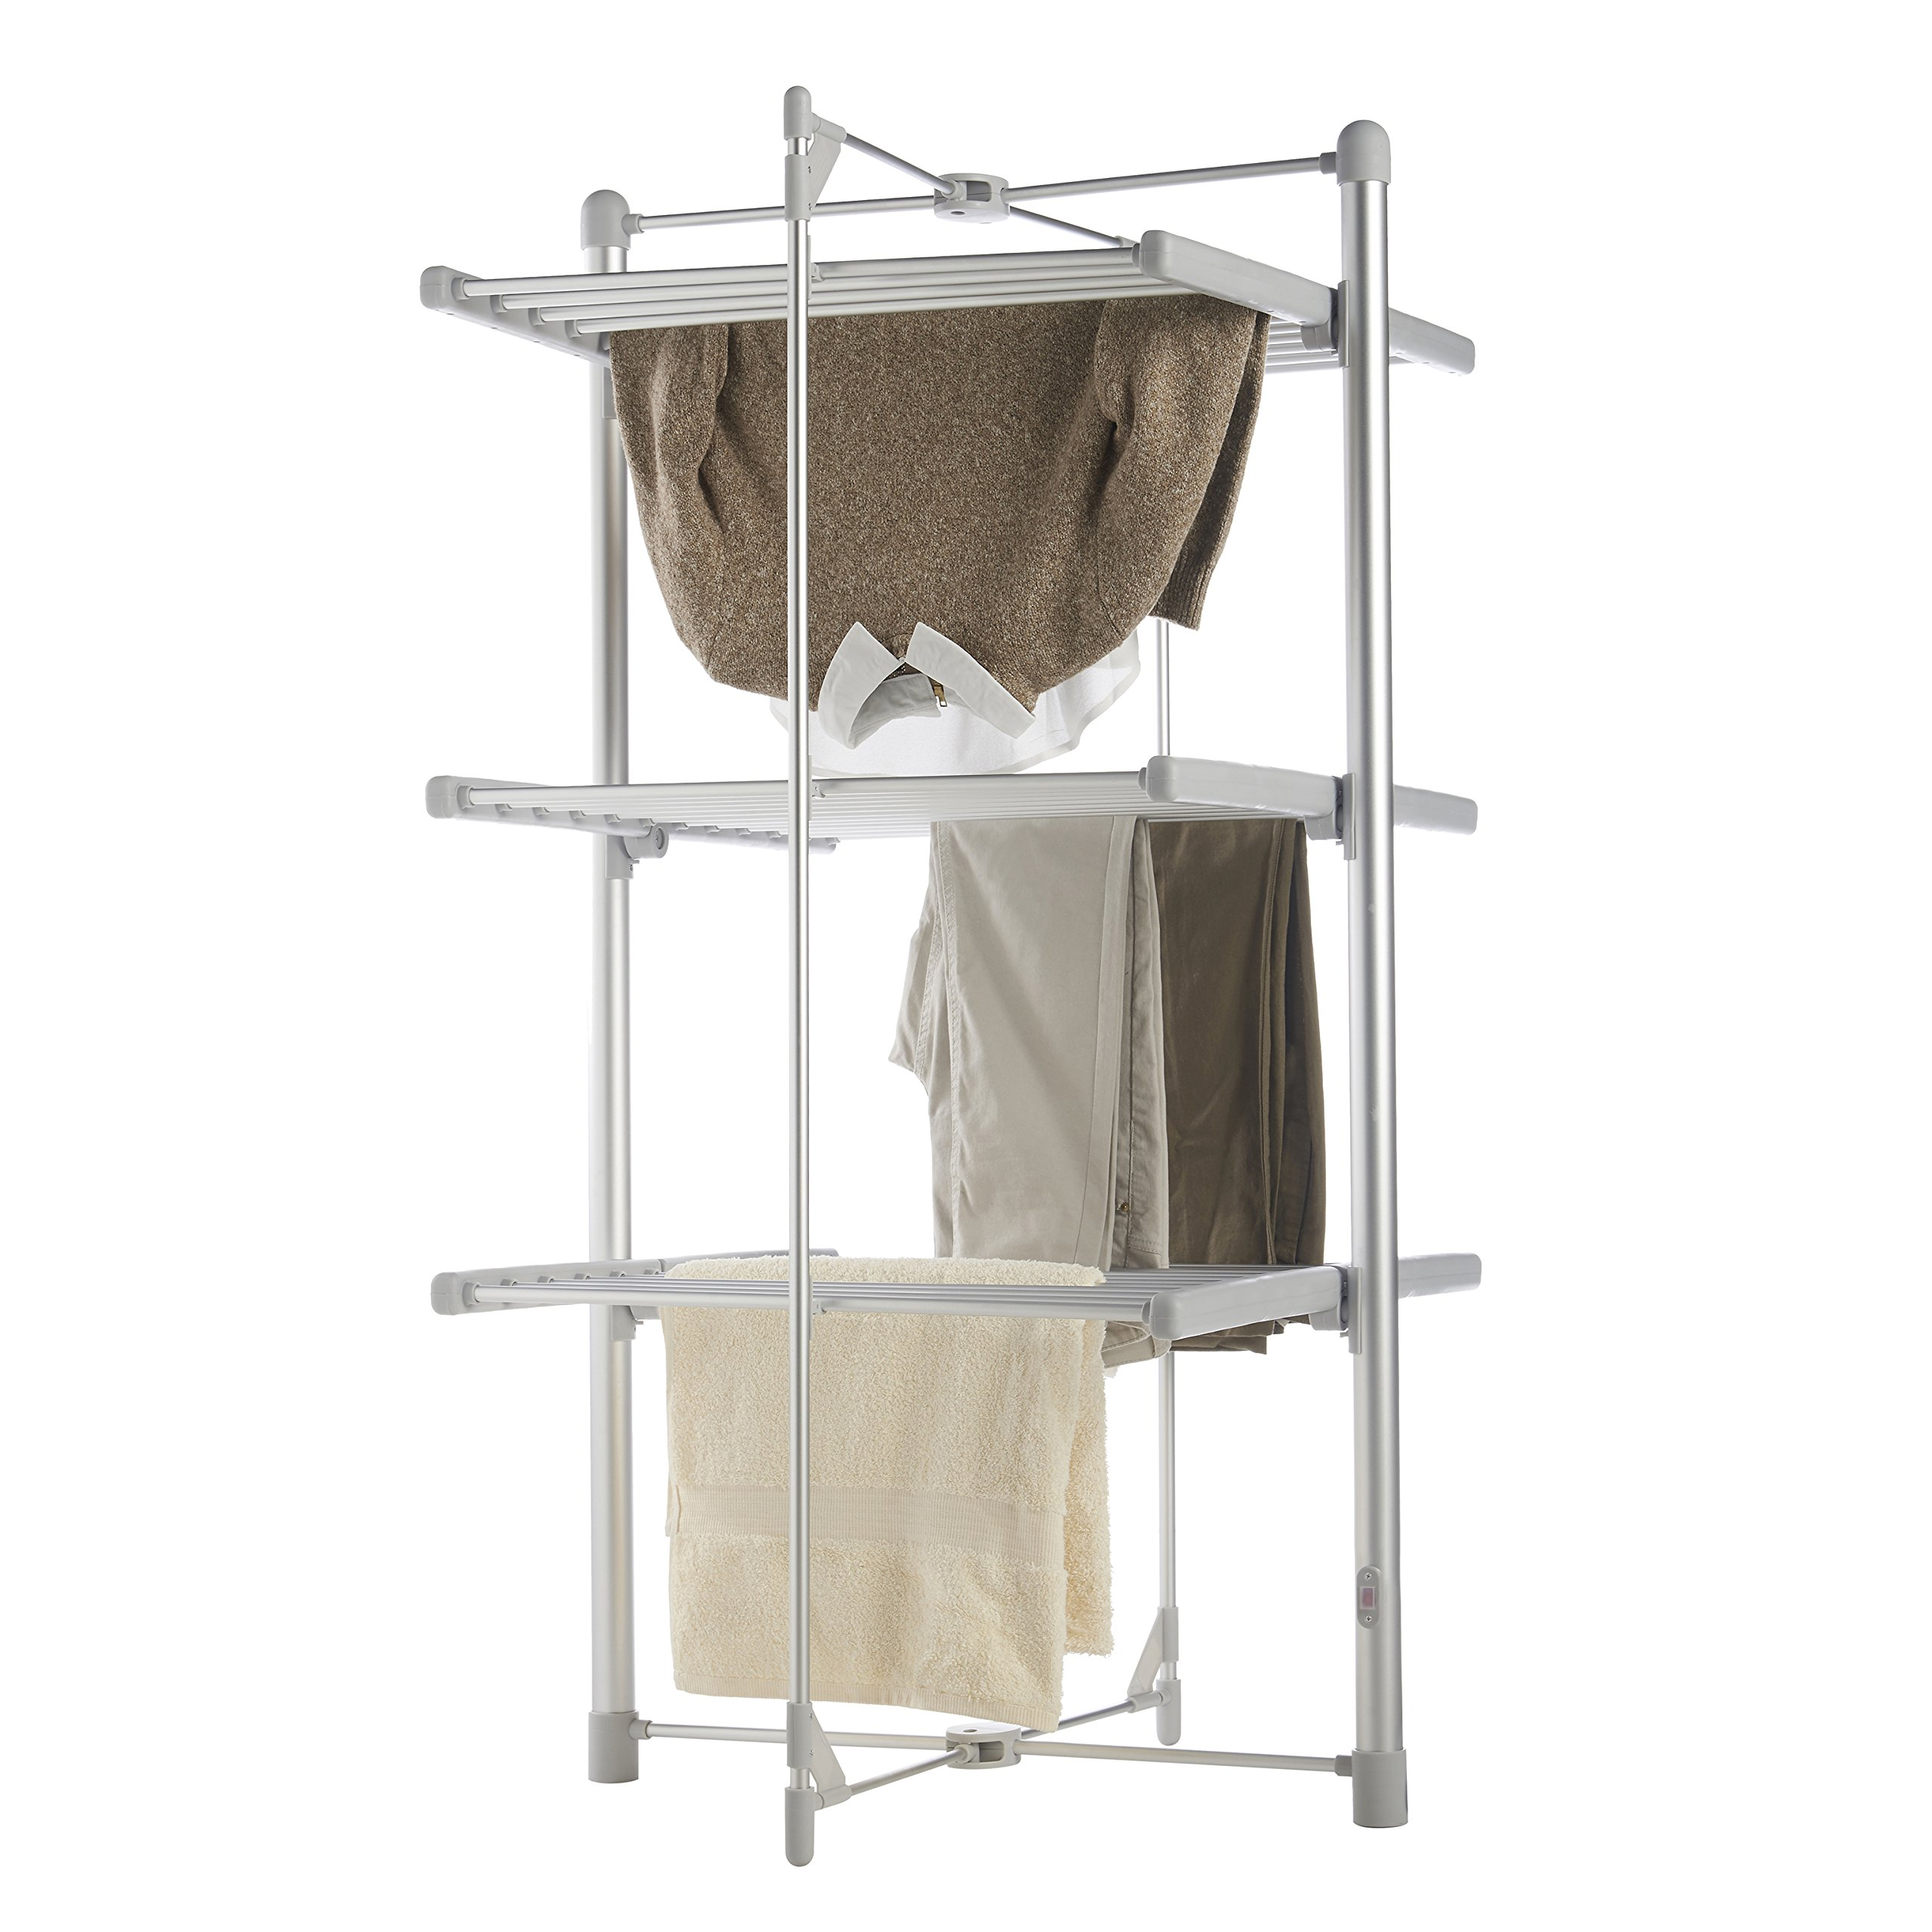 greenway wall wooden argos drying heated clothes mounted kmart rack costco electric walmart dryer